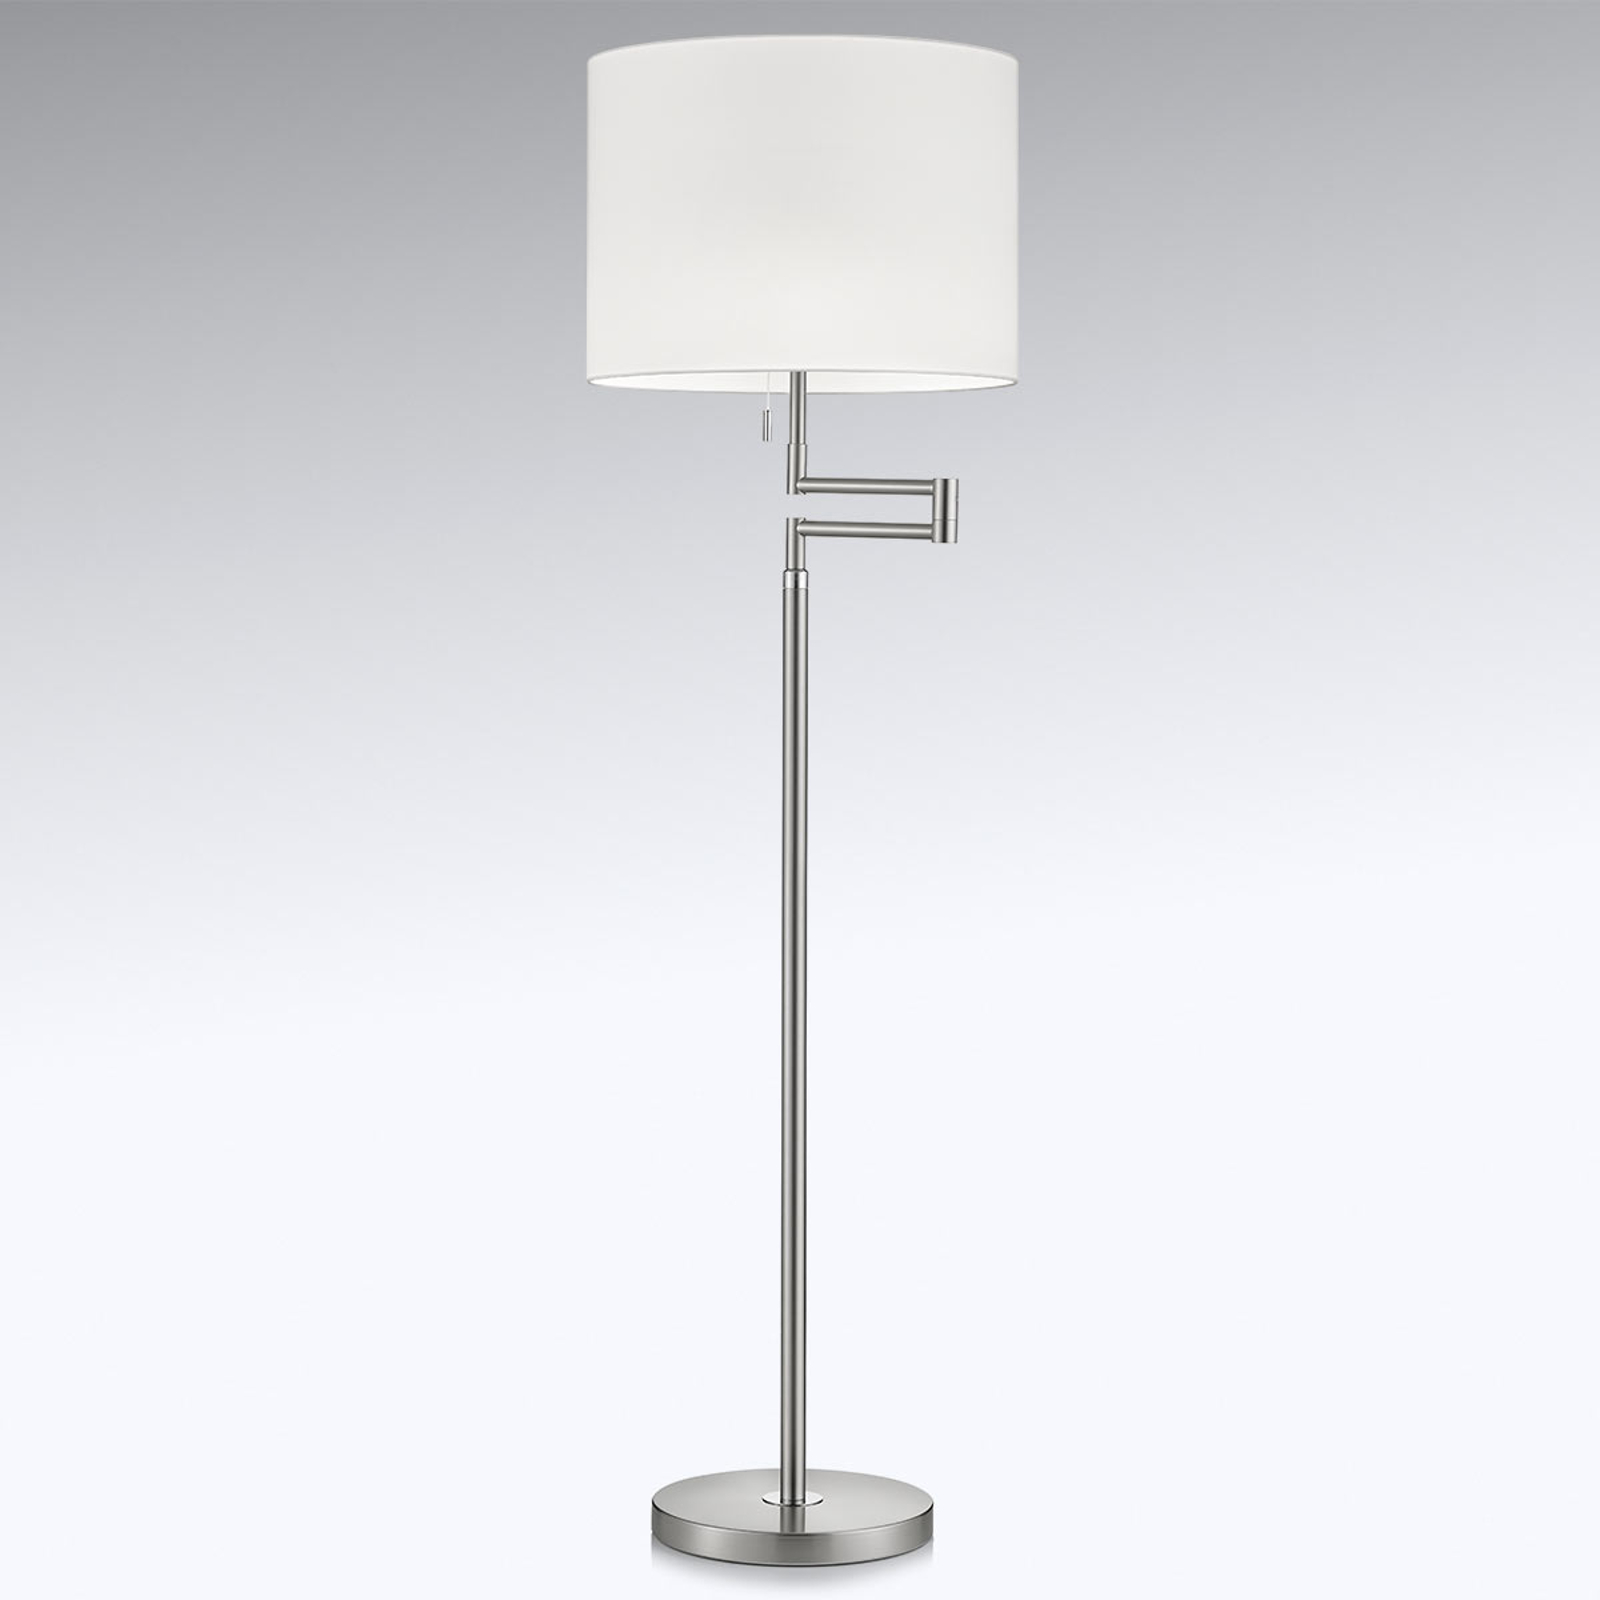 Lampadaire LED Lilian flexible, dimmable